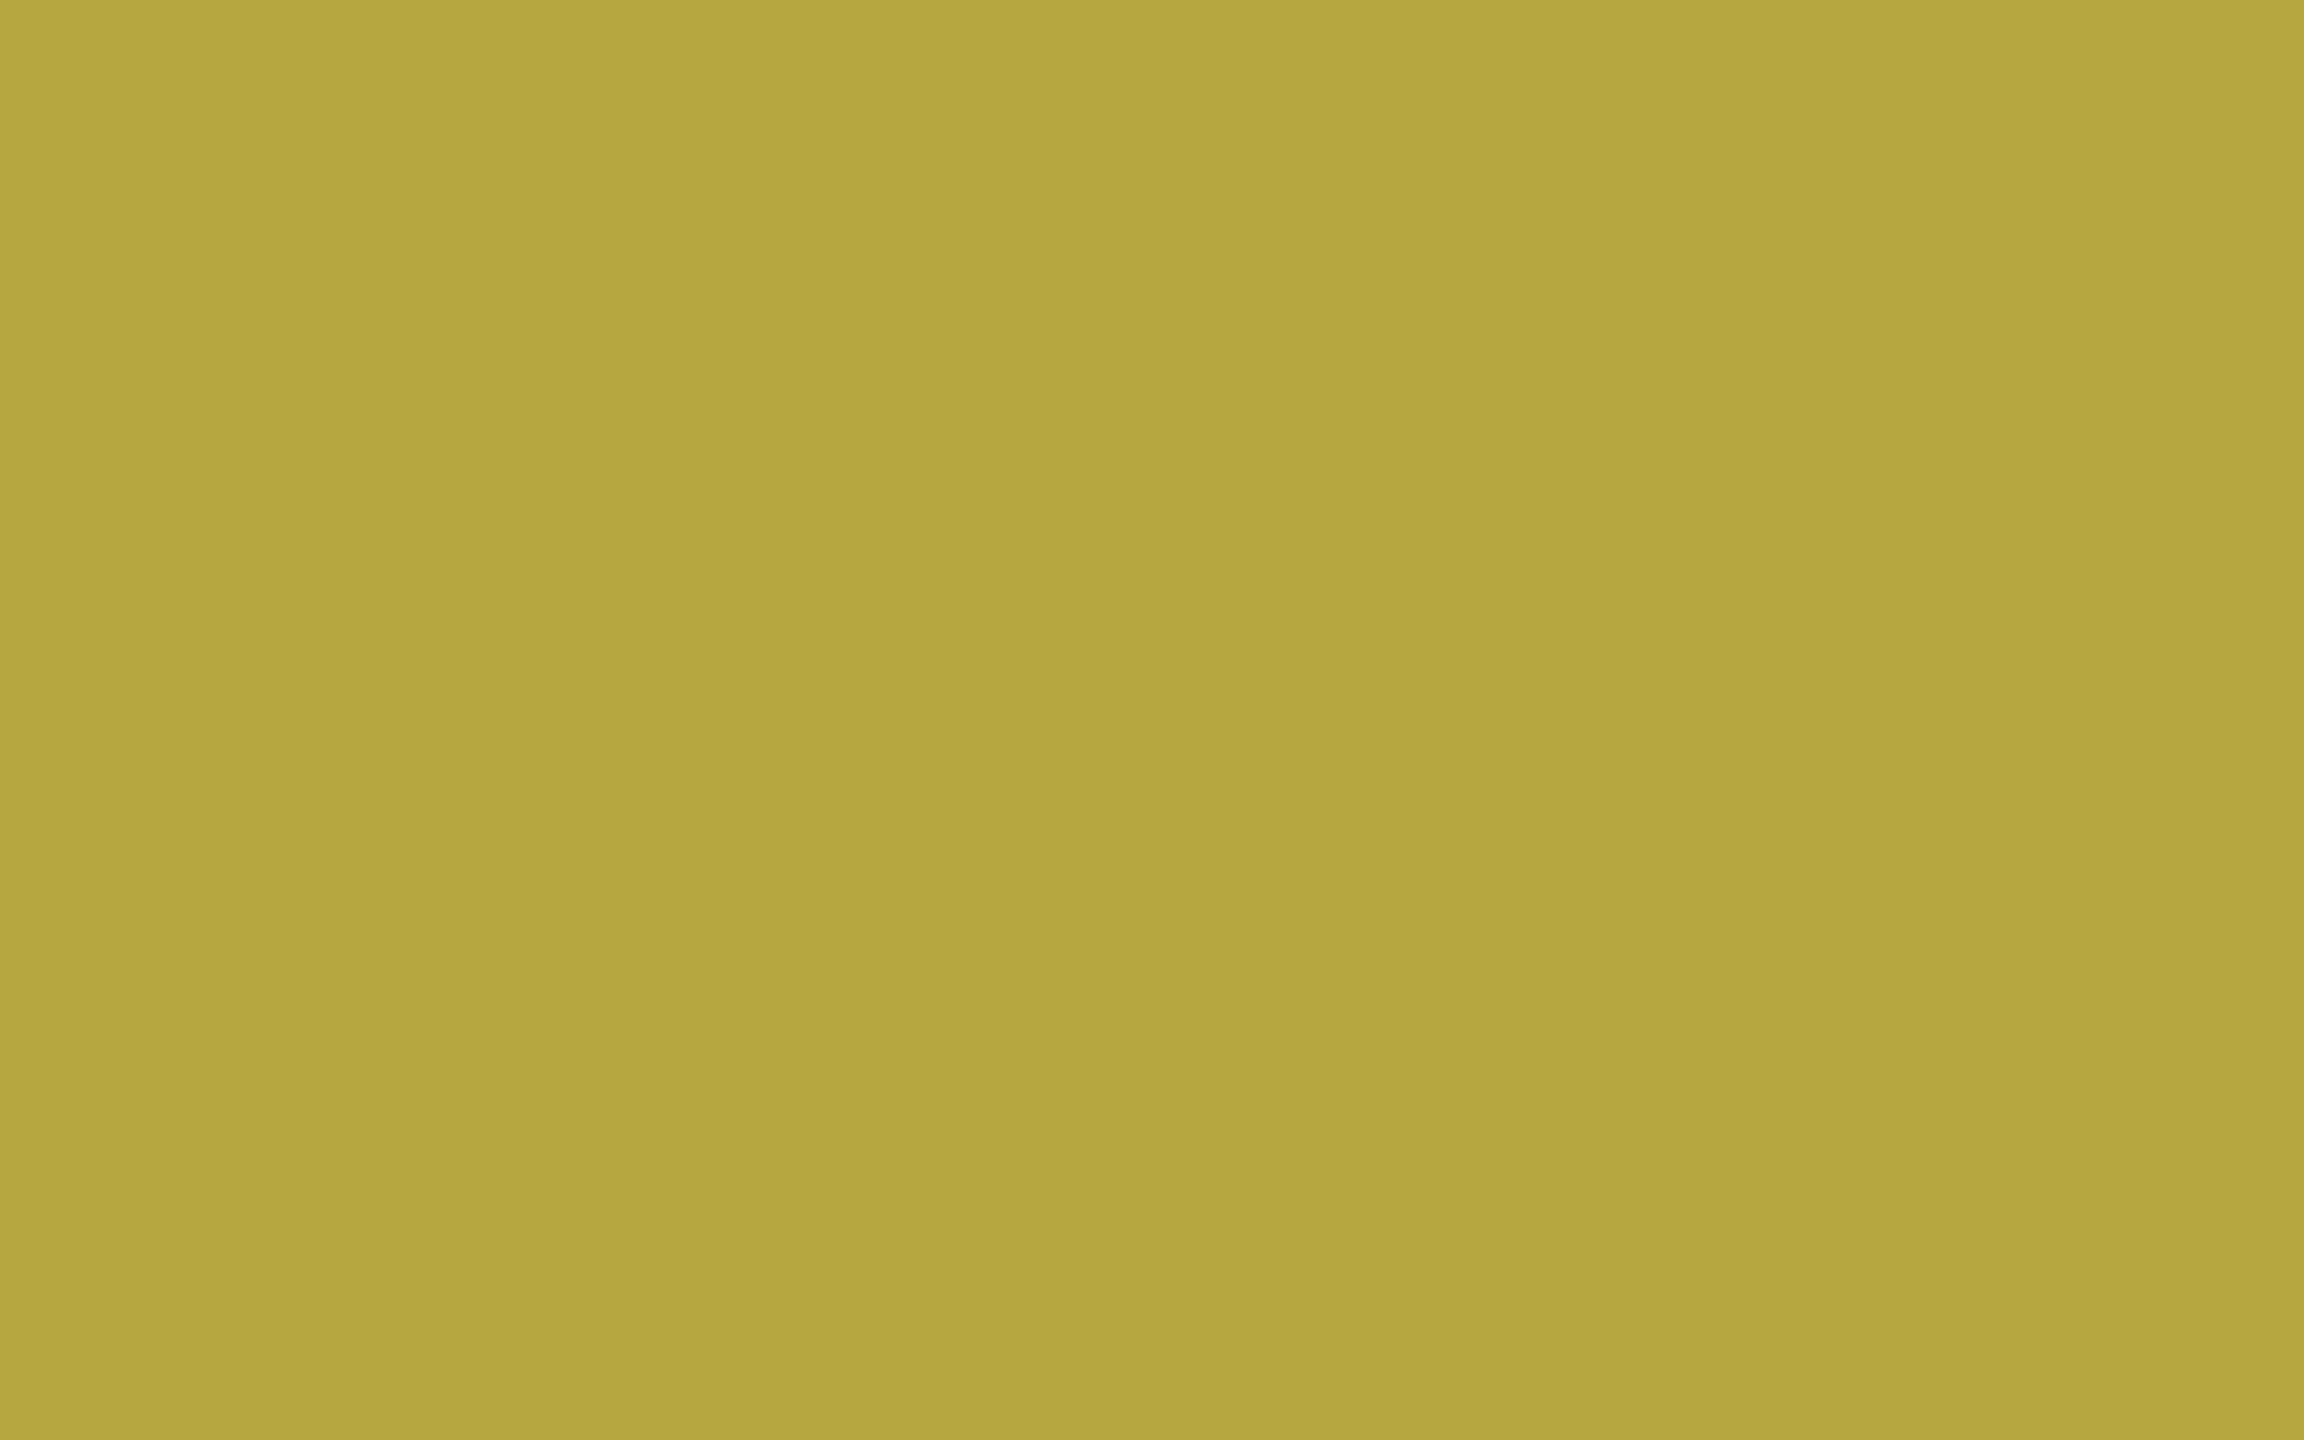 2304x1440 Brass Solid Color Background